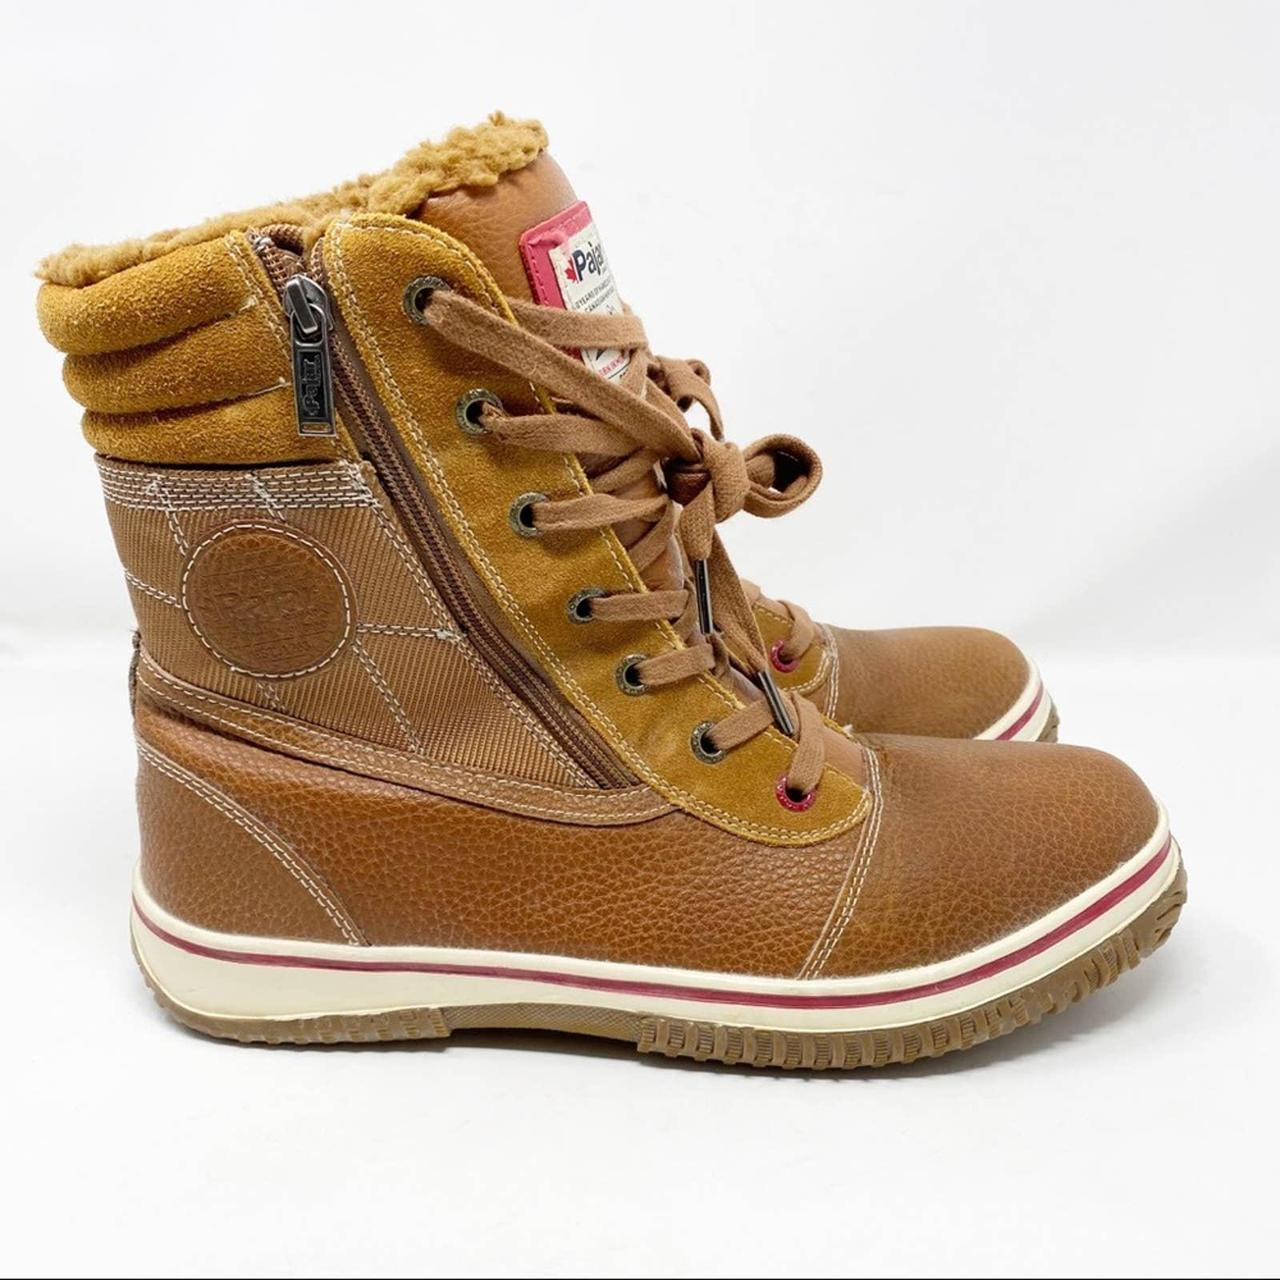 Product Image 1 - -In great condition  -100% leather -Waterproof -Shoe